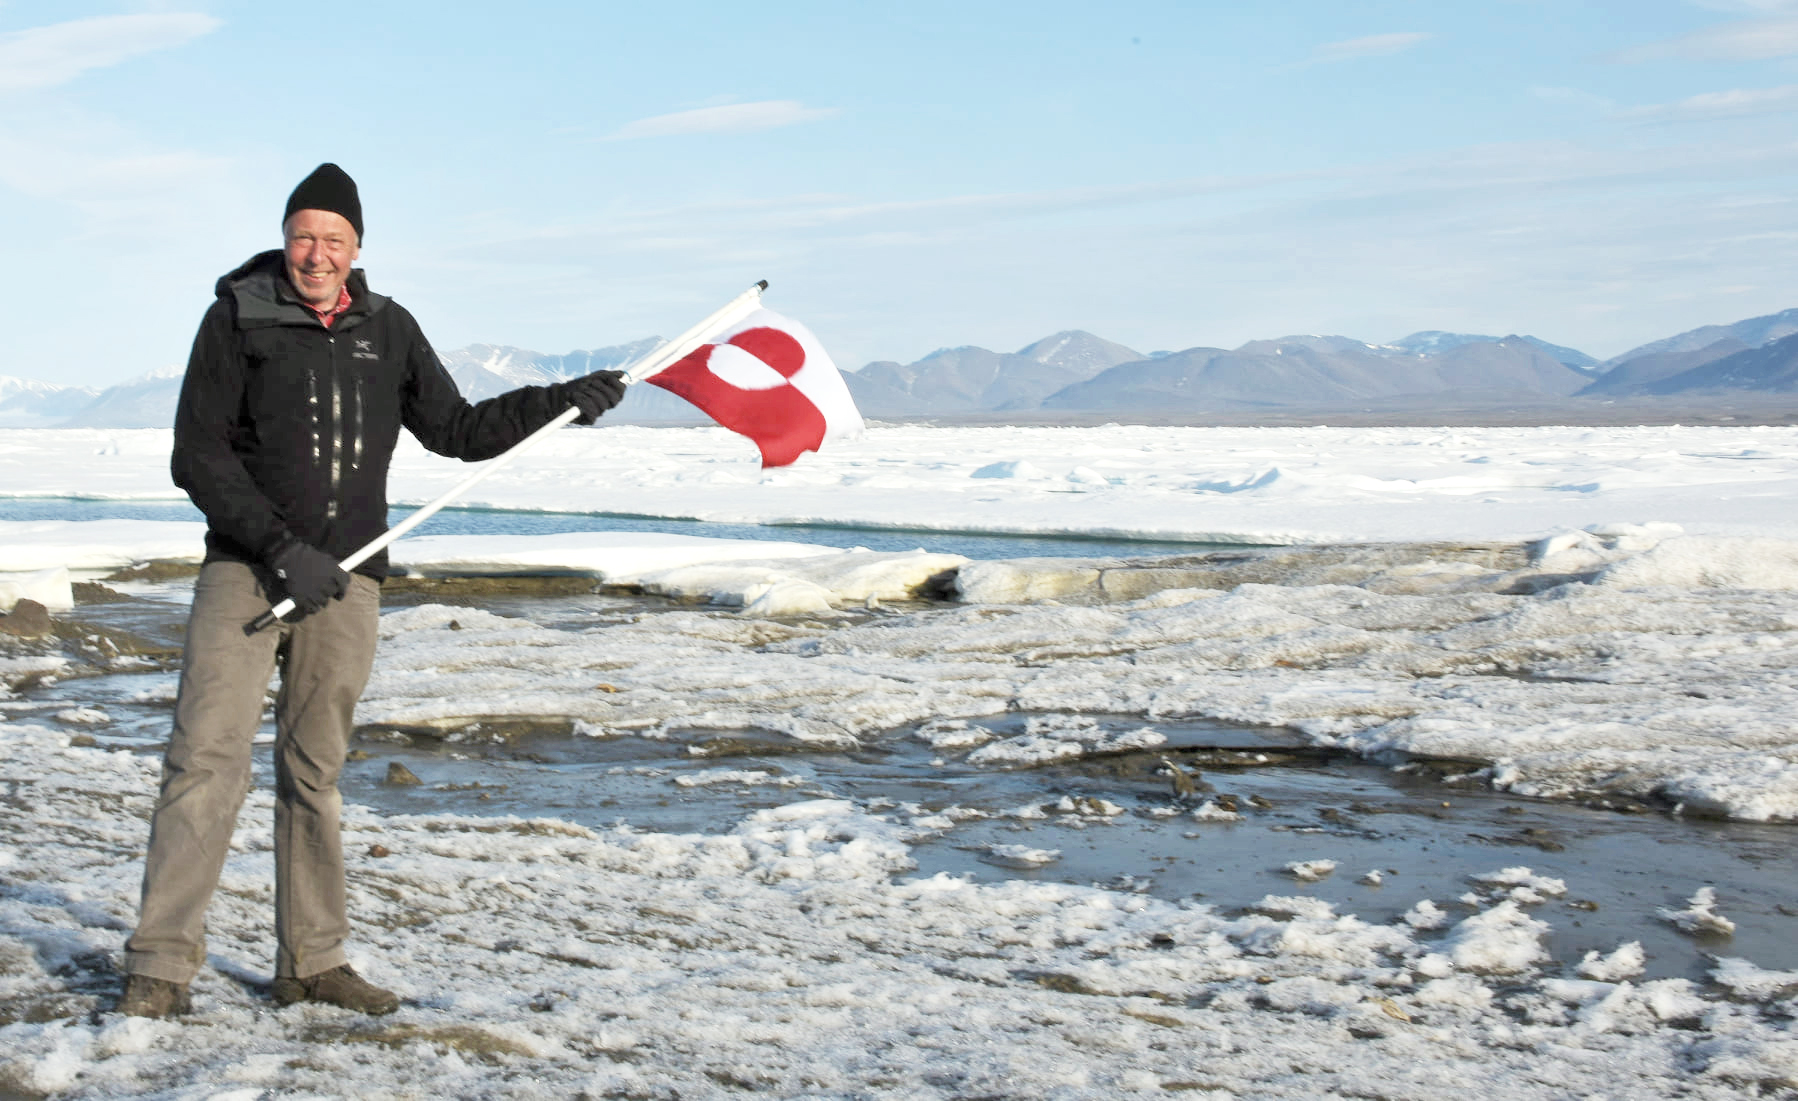 Morten Rasch posing with the flag of Greenland during an arctic expedition.